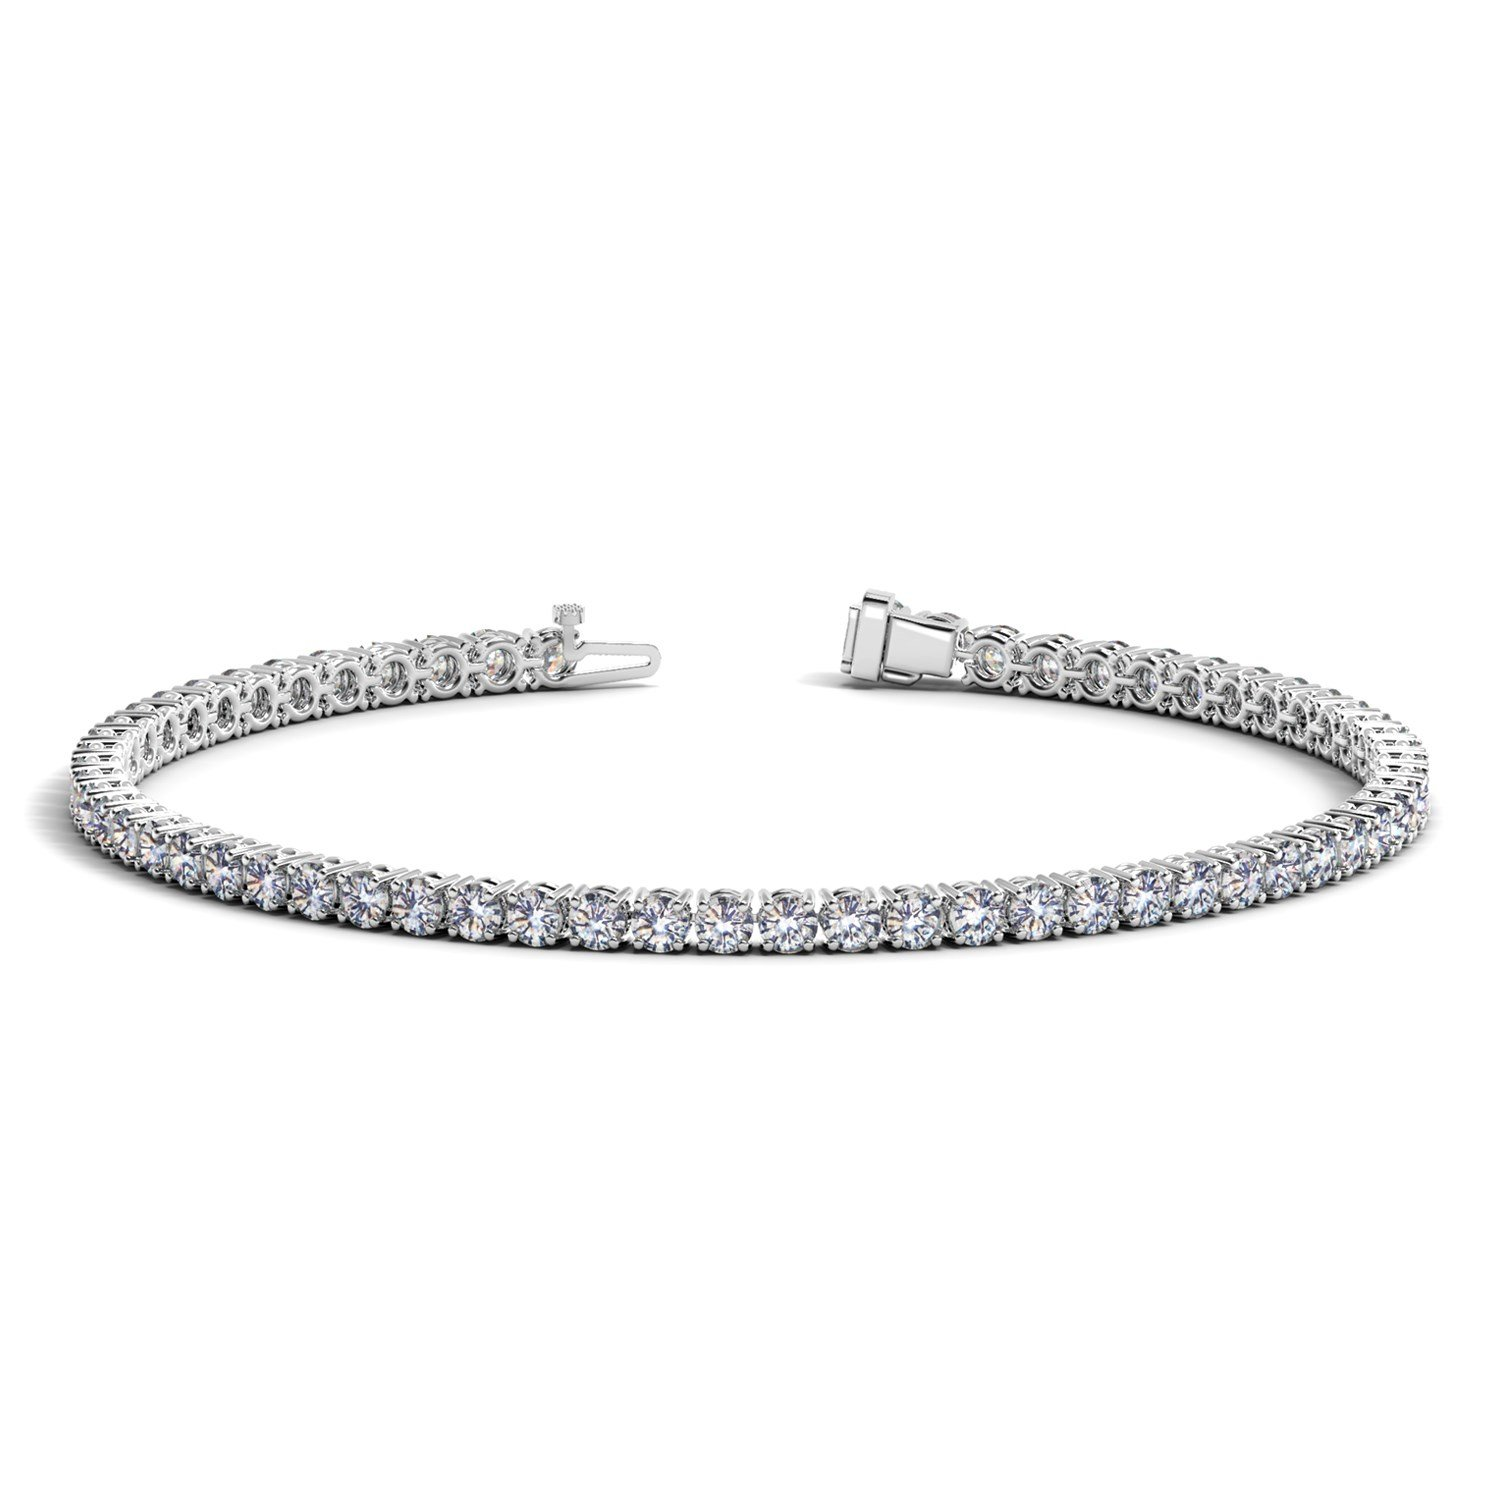 Unique 14K White Gold (3 ct. tw.) Round Diamond Tennis Bracelet 7 inches